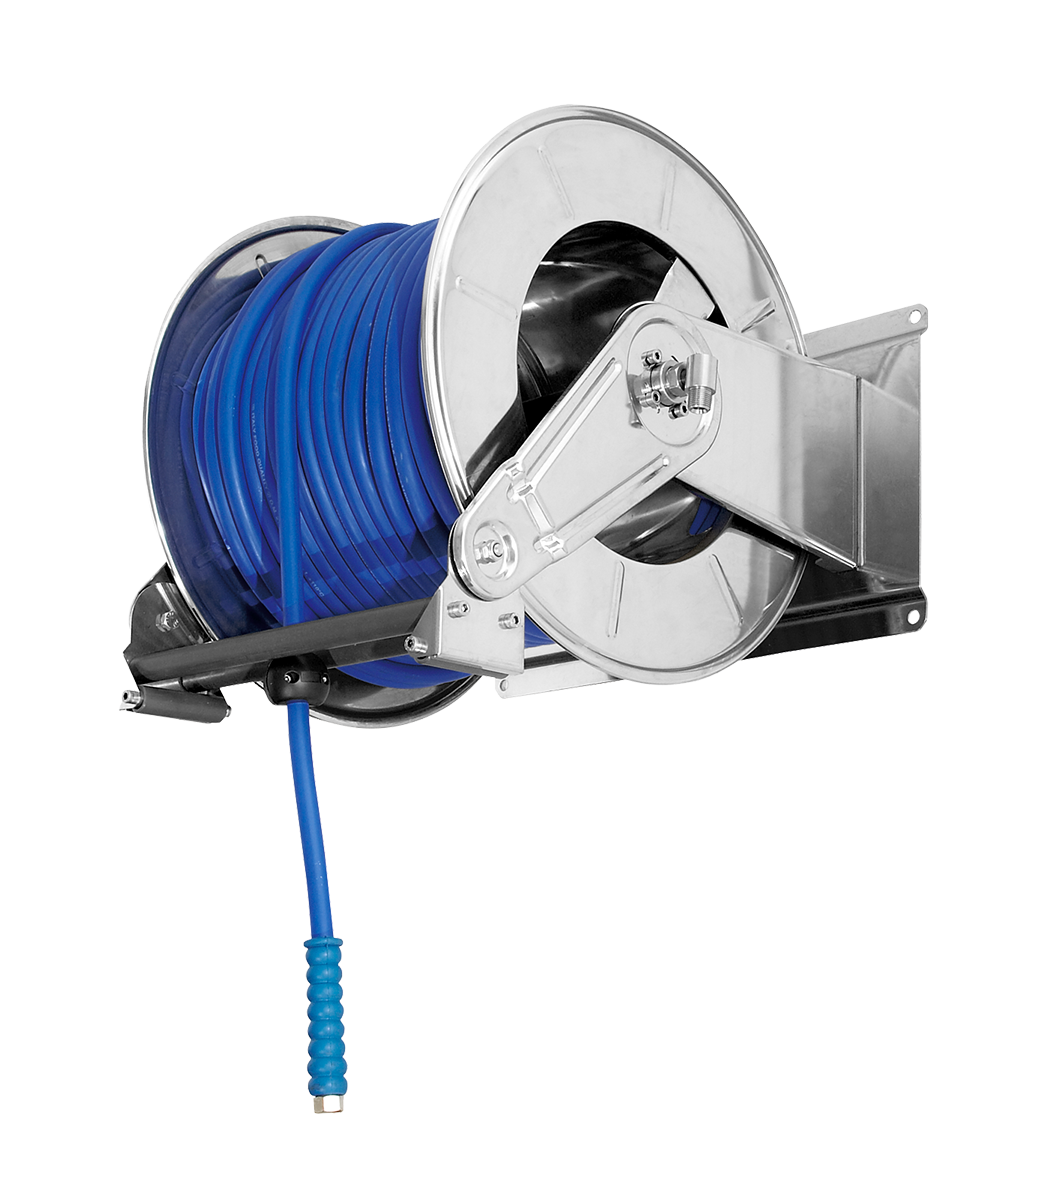 Automatic hose reel <60 metres 3/8